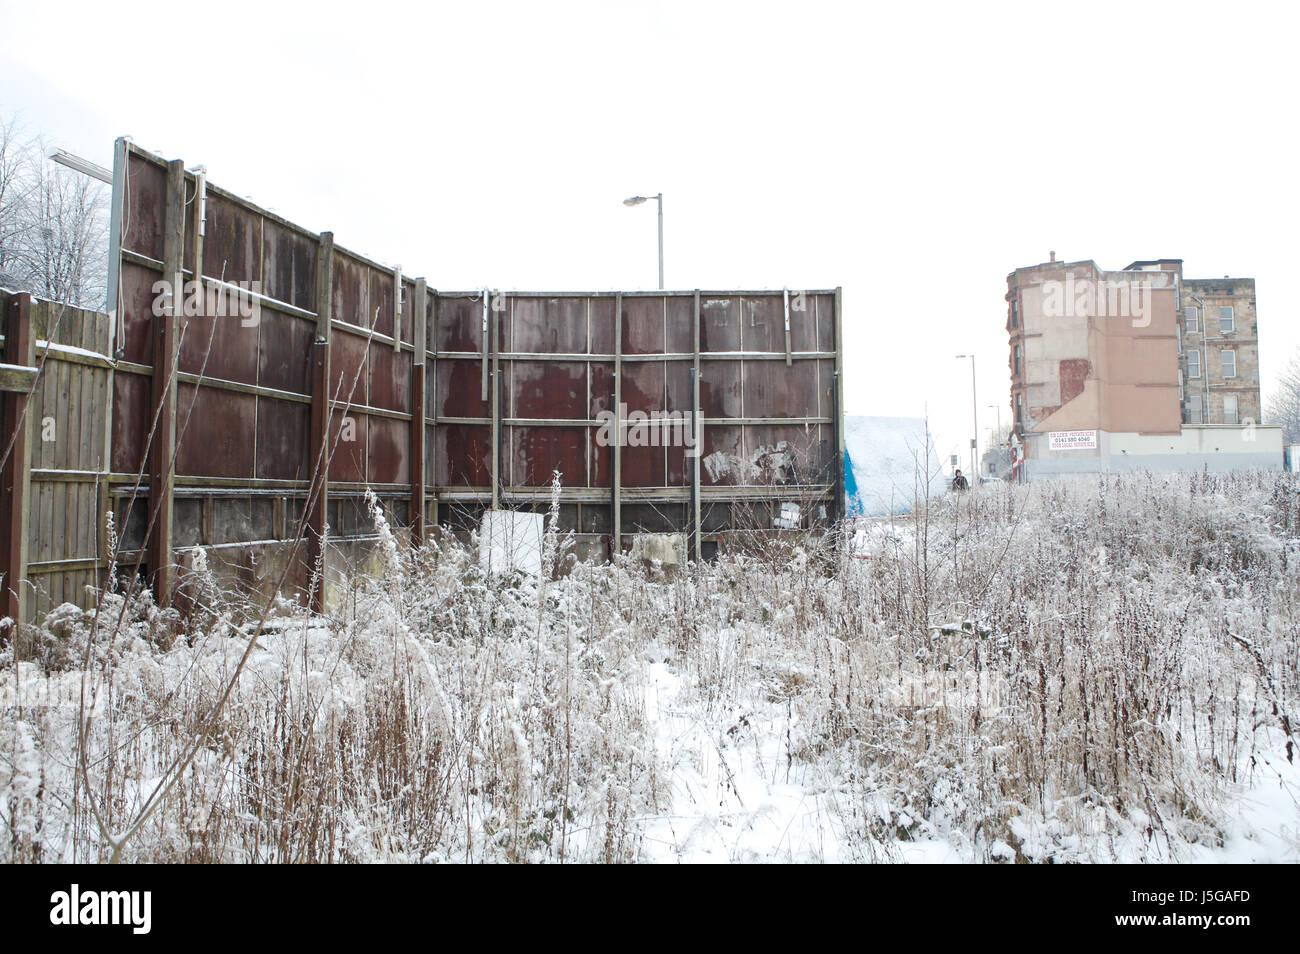 View from behind billboards in East End of Glasgow. - Stock Image